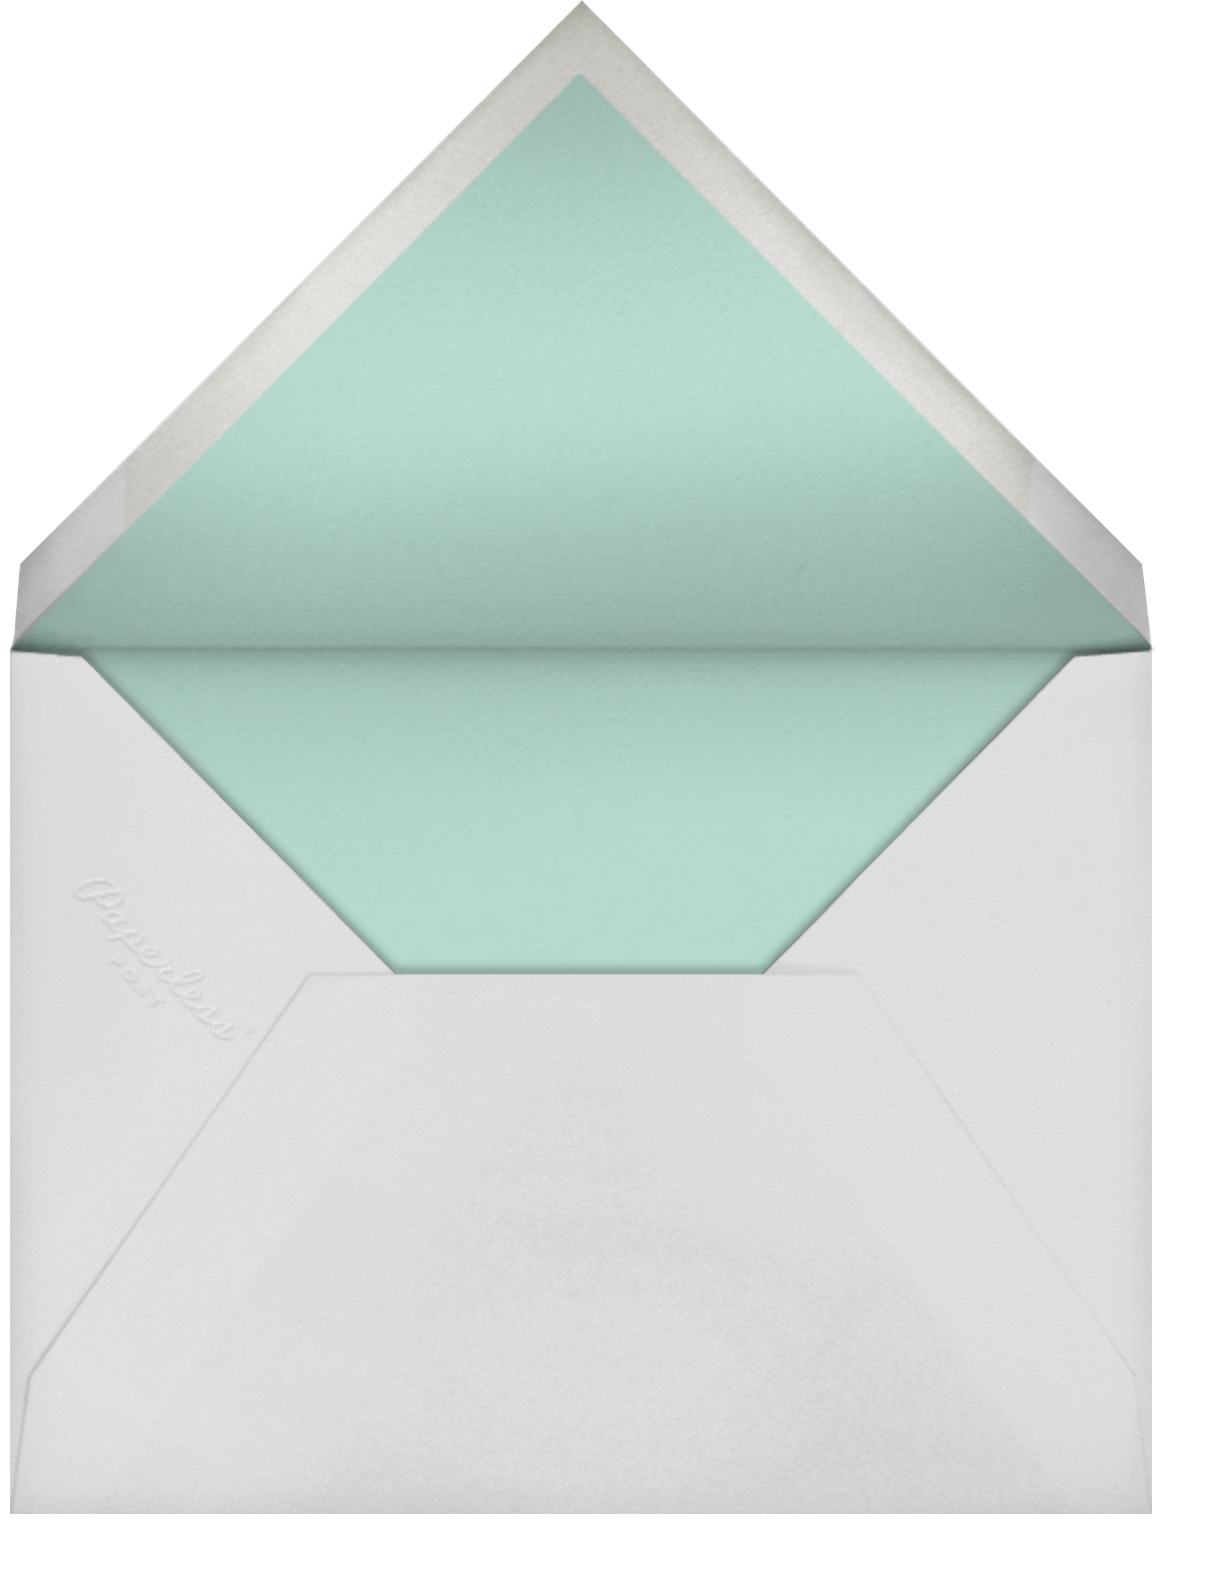 Love Ewe - Celadon - Paperless Post - Love cards - envelope back